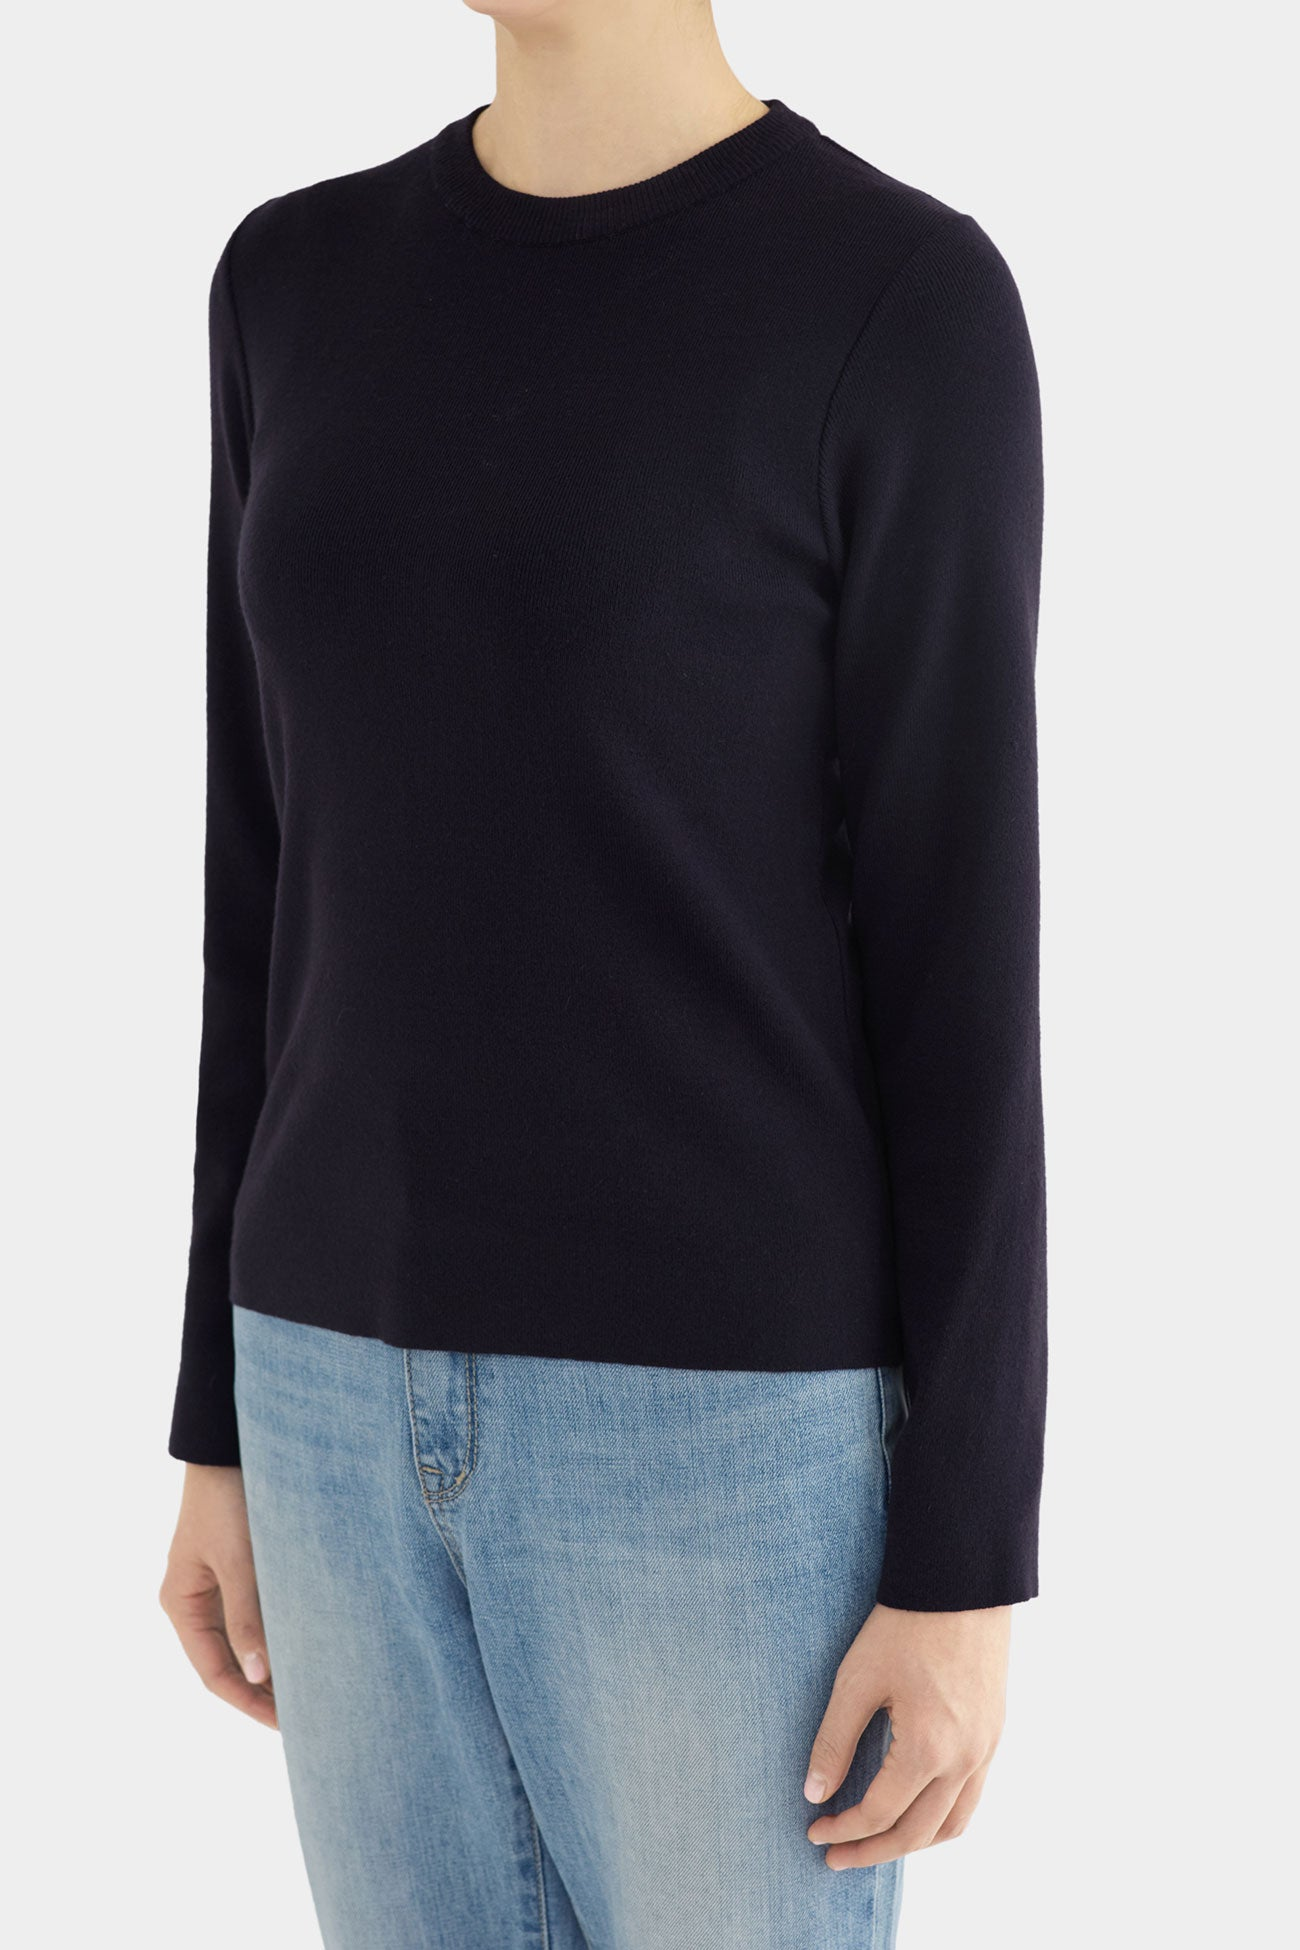 NAVY MAUD SIMPLE CREWNECK